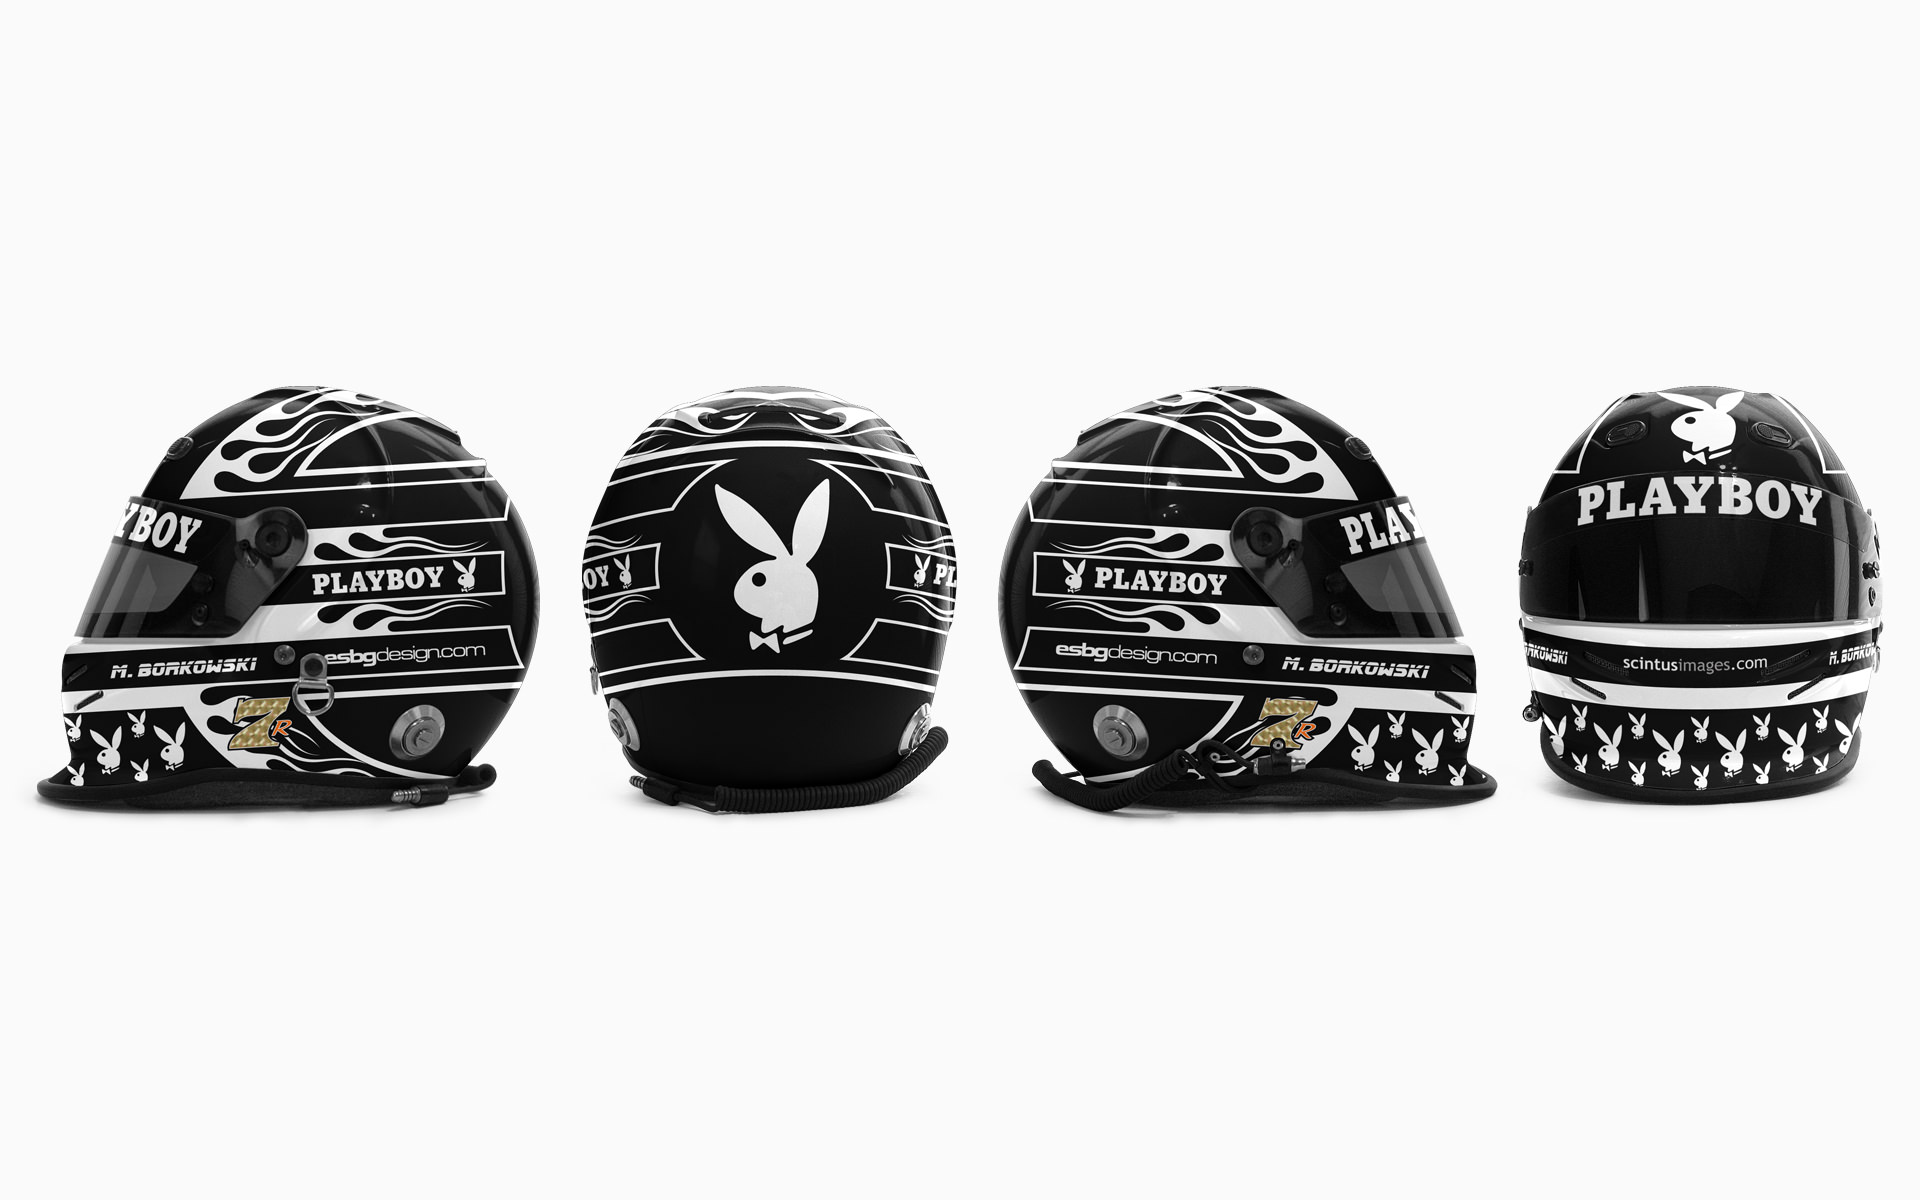 Mike Borkowski Playboy Helmet Livery Visualization